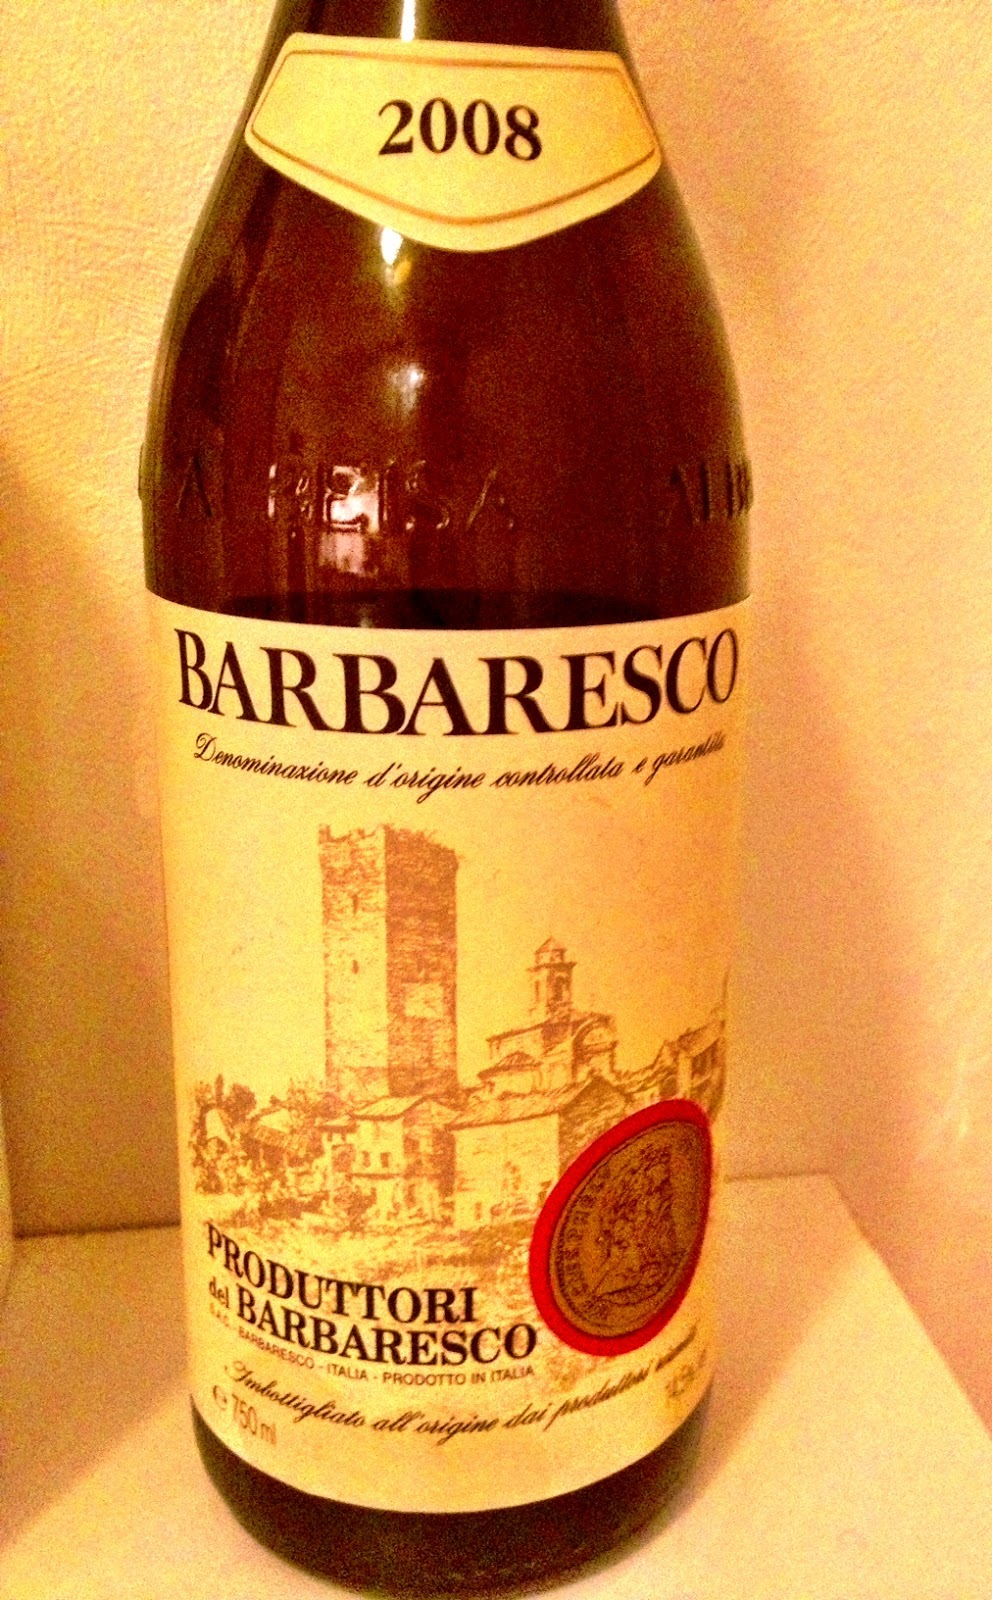 Tasting note on the 2008 Produttori del Barebaresco Barbaresco